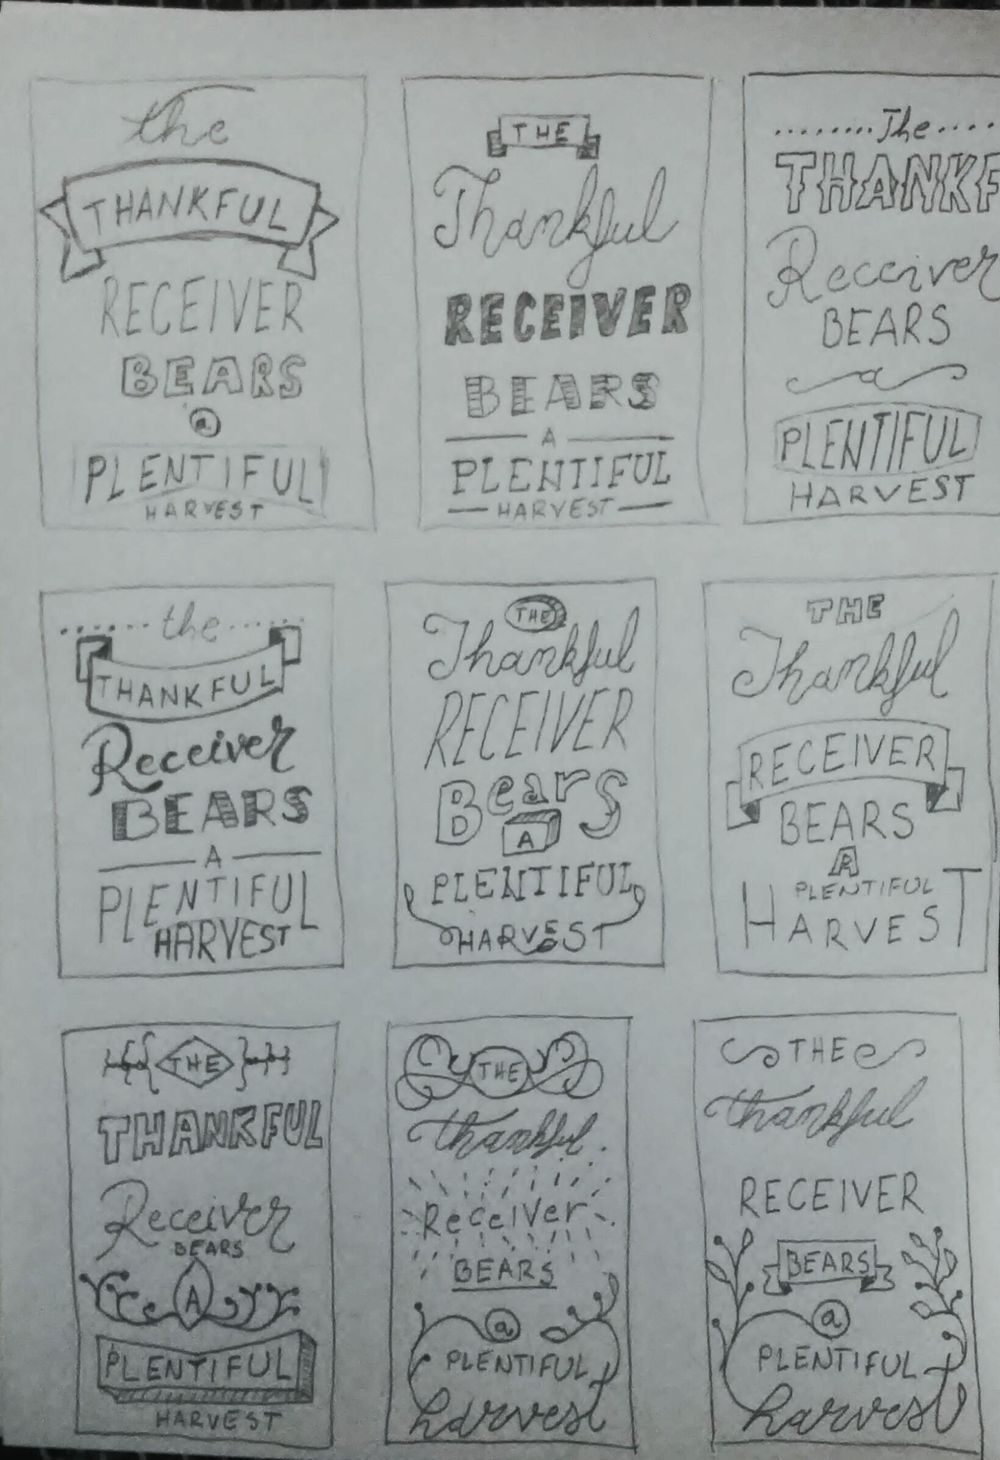 The thankful receiver - image 1 - student project